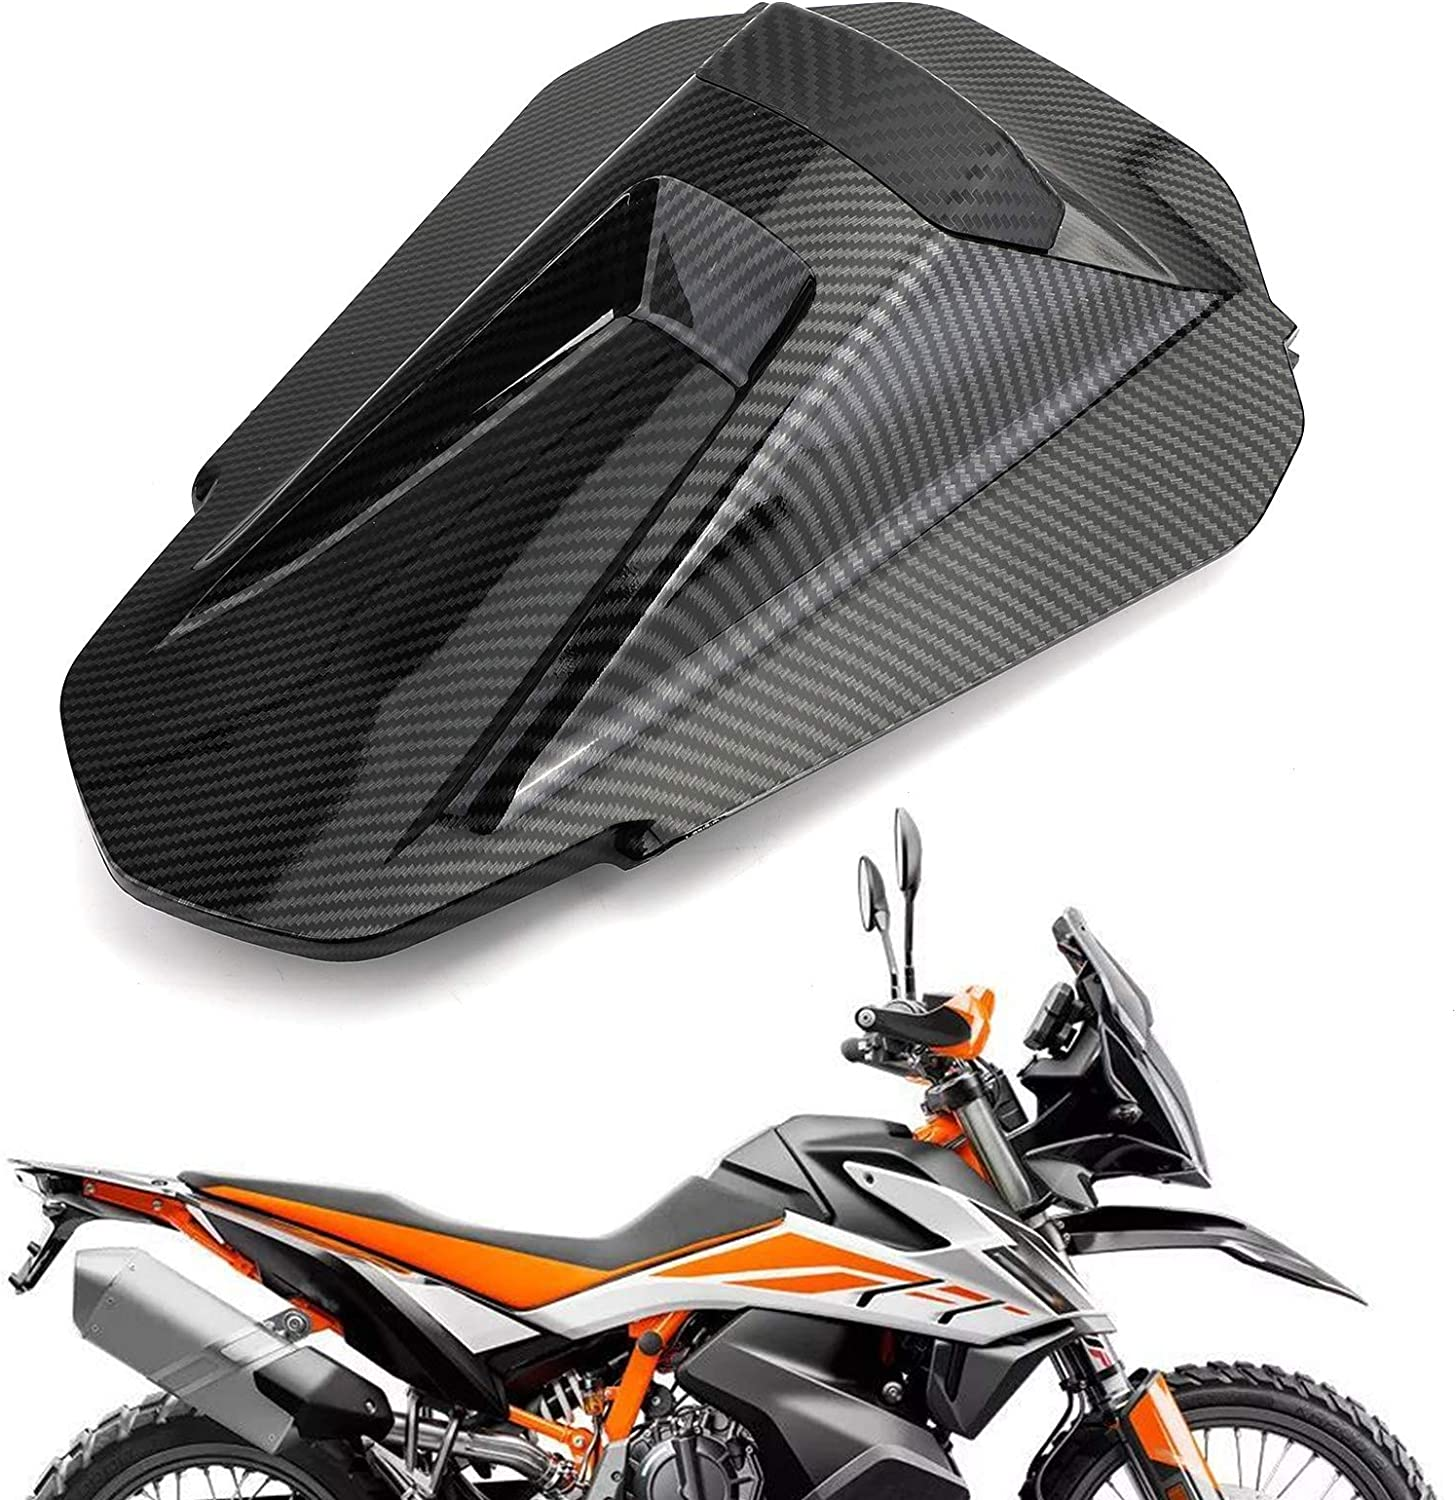 Areyourshop 1 Piece Motorcycle ABS Rear Seat Fairing Cover Cowl For K-T-M 790 DUKE 2019-2020